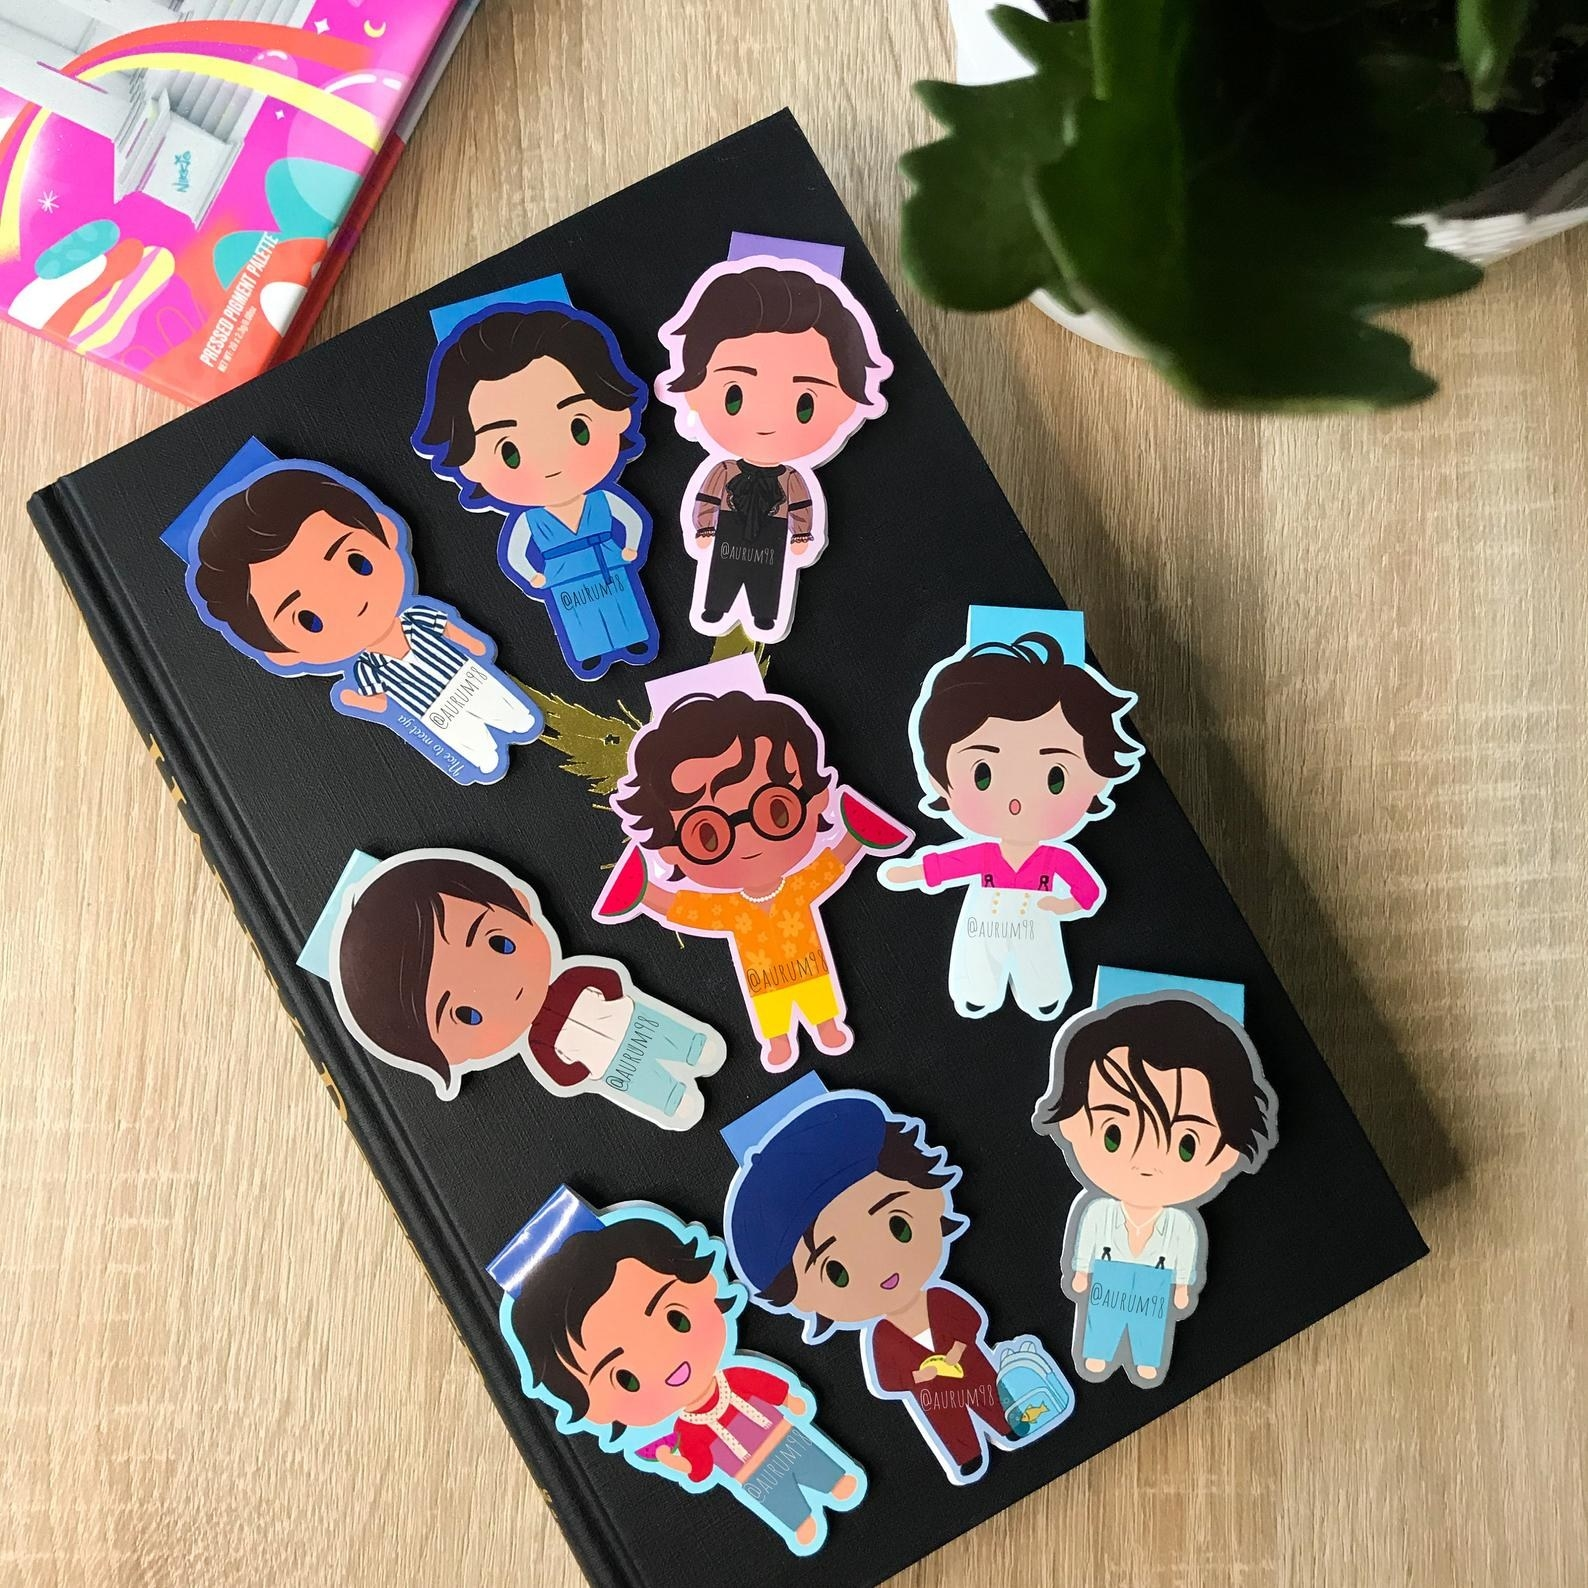 Bookmarks shaped like cartoon versions of Harry Styles in different outfits